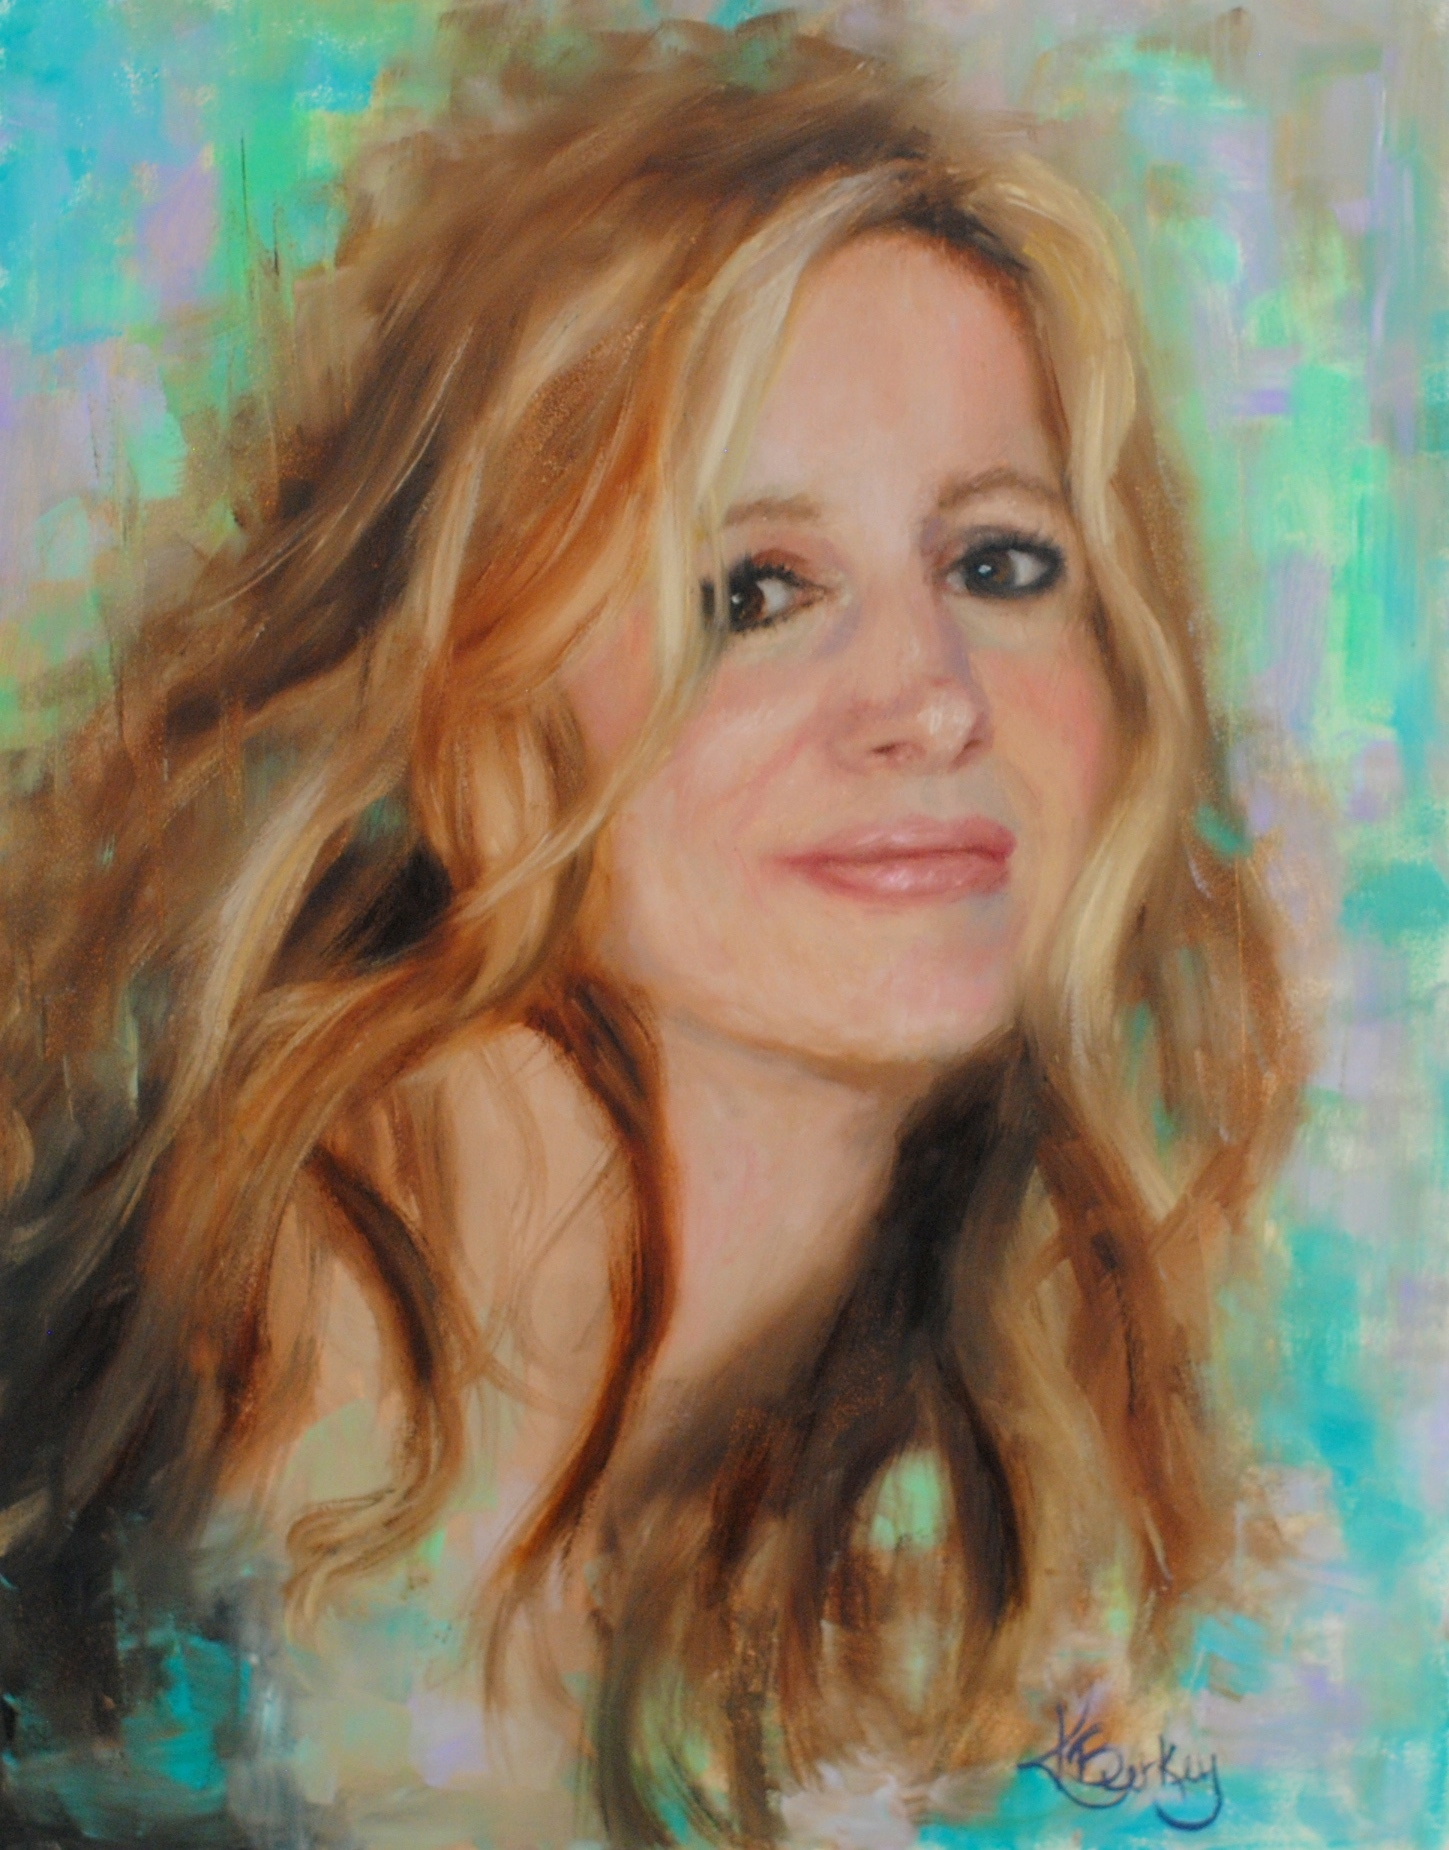 <div class='title'>           Kelly-Self-Portrait-2017-gxca6i         </div>